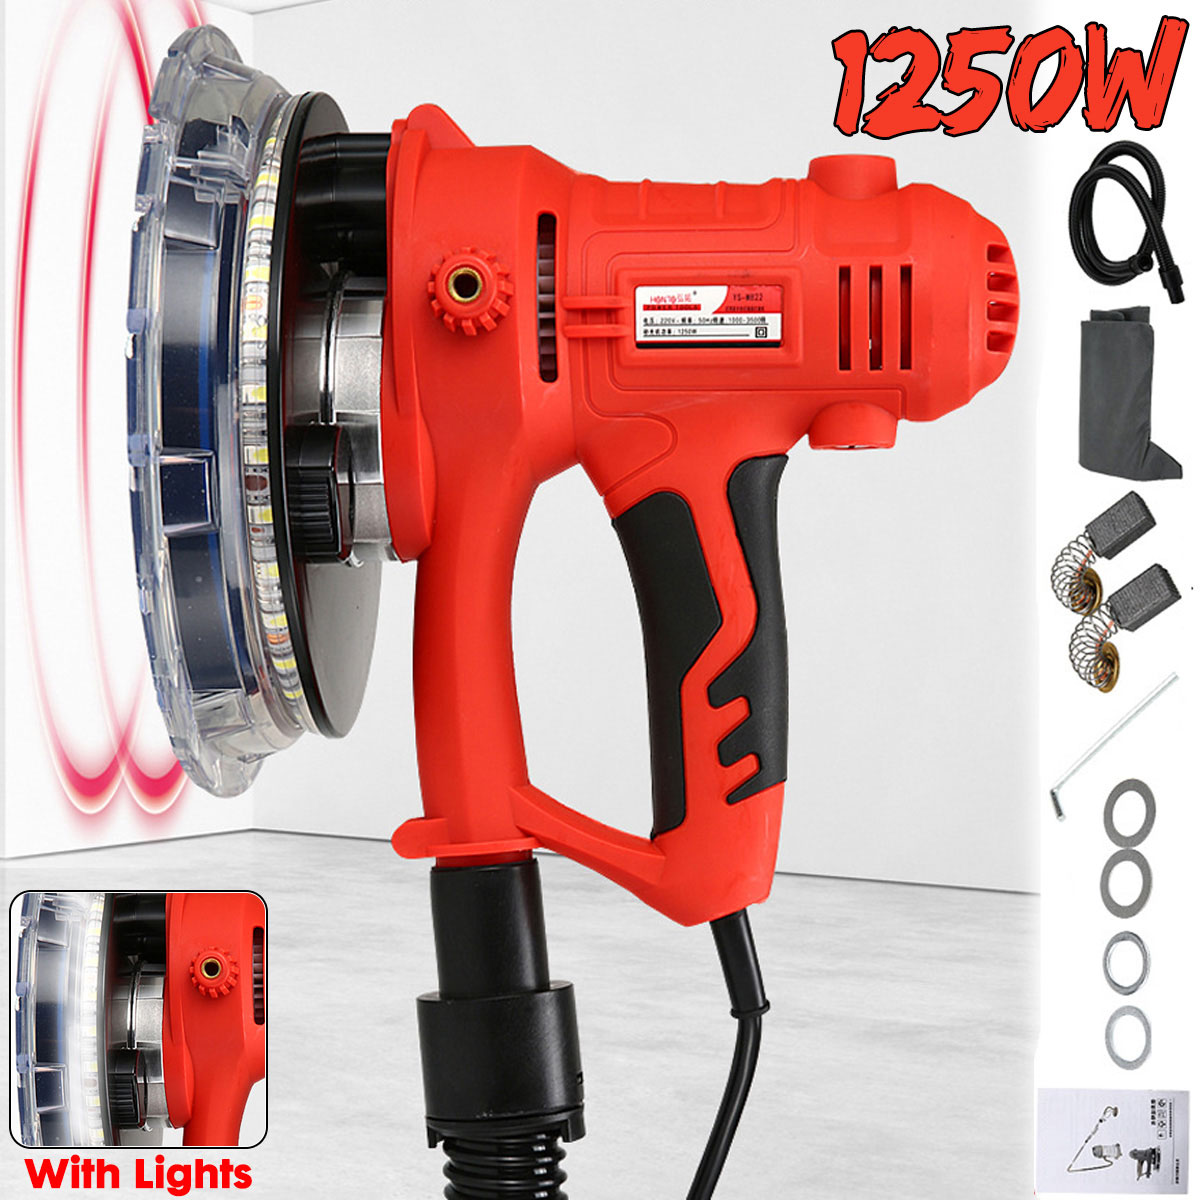 Doersupp Drywall Sander Wall Polishing Machine Grinding 220V 1350W Portable Led Light 1000-3000R min Wall Putty Polisher Machine